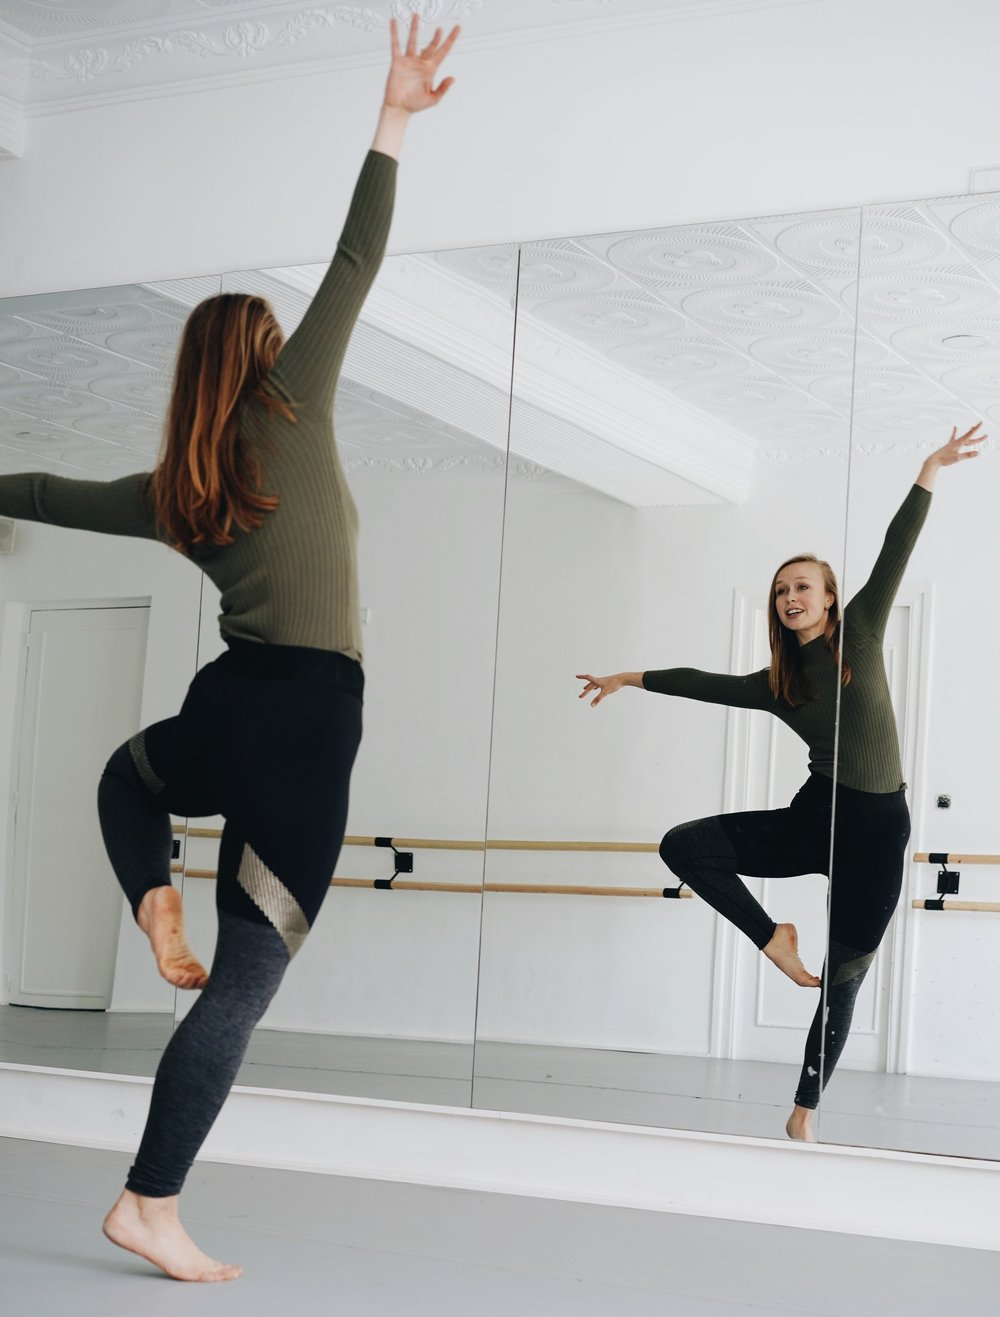 Regular Classes - Ruby teaches contemporary dance courses for ages 8-16 and adults at Le Conservatoire D'Art et Musique in Tangier, Morocco. If you are interested in joining, please contact the conservatory about class subscriptions.